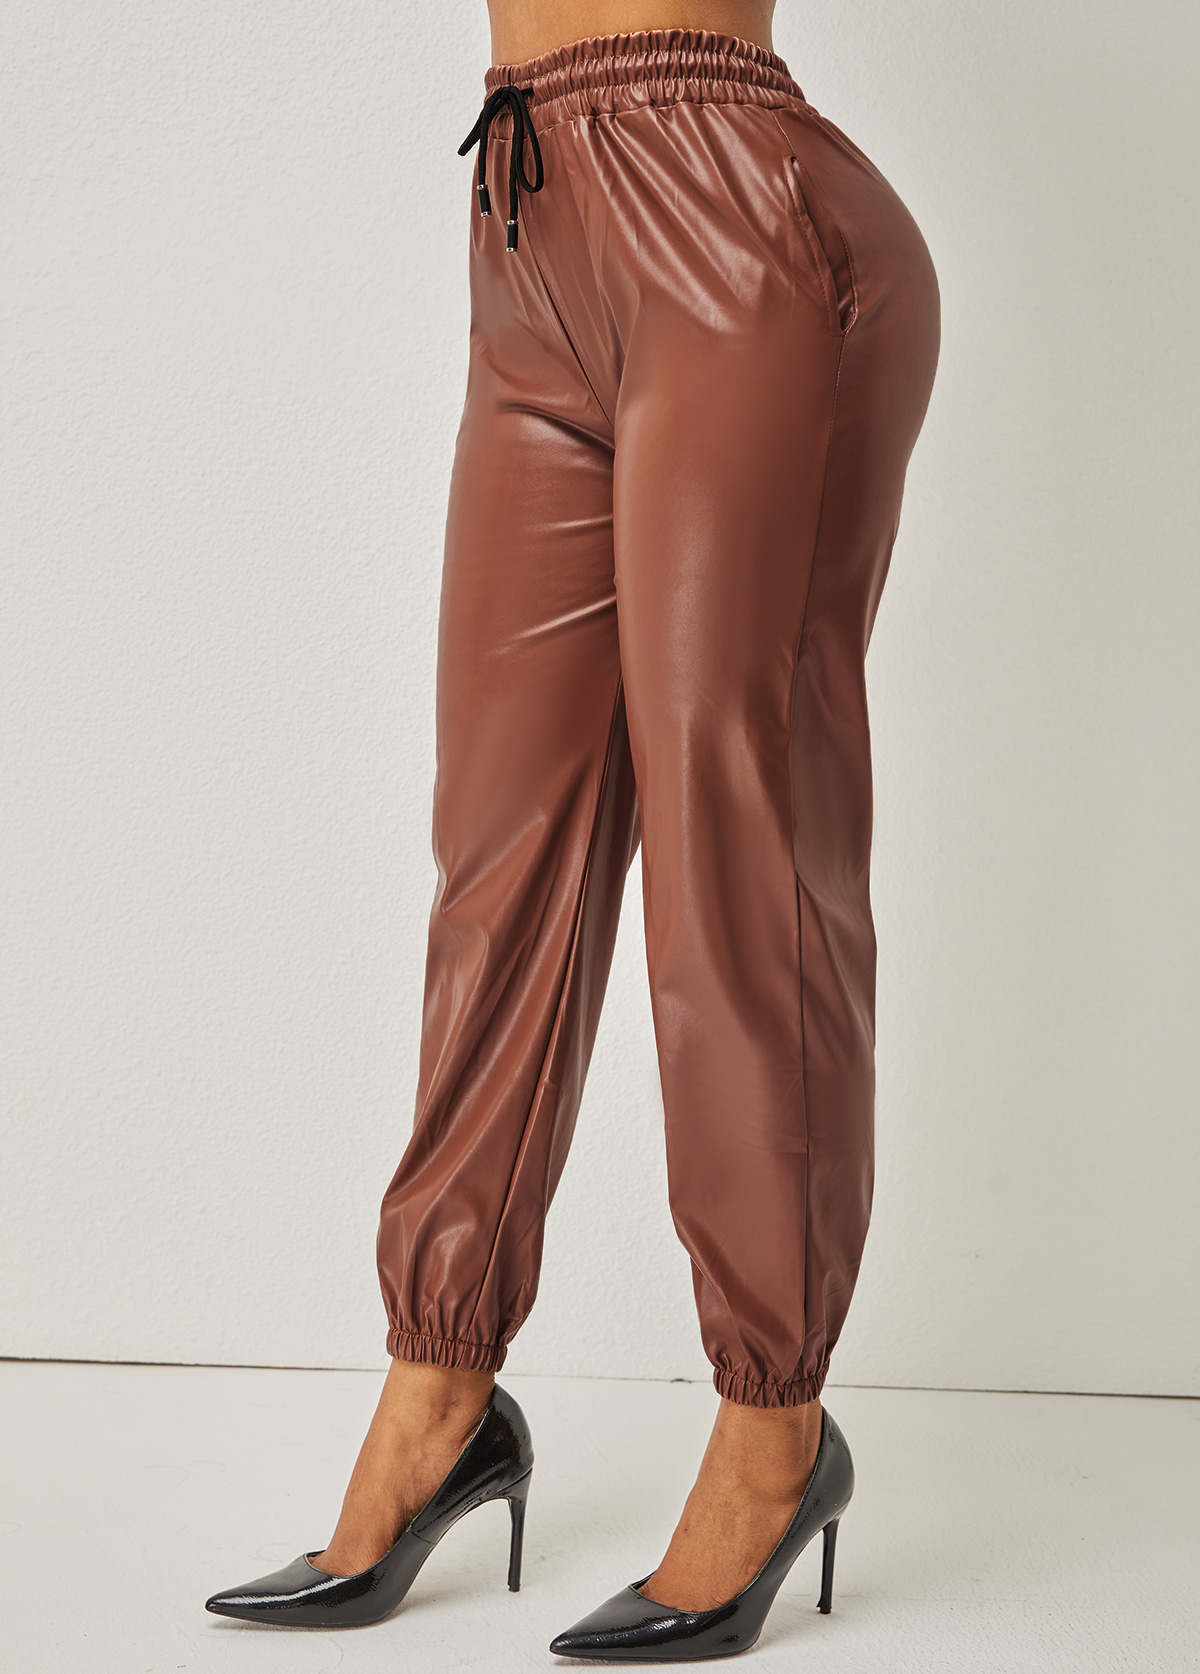 Drawstring Detail High Waisted Solid Pants